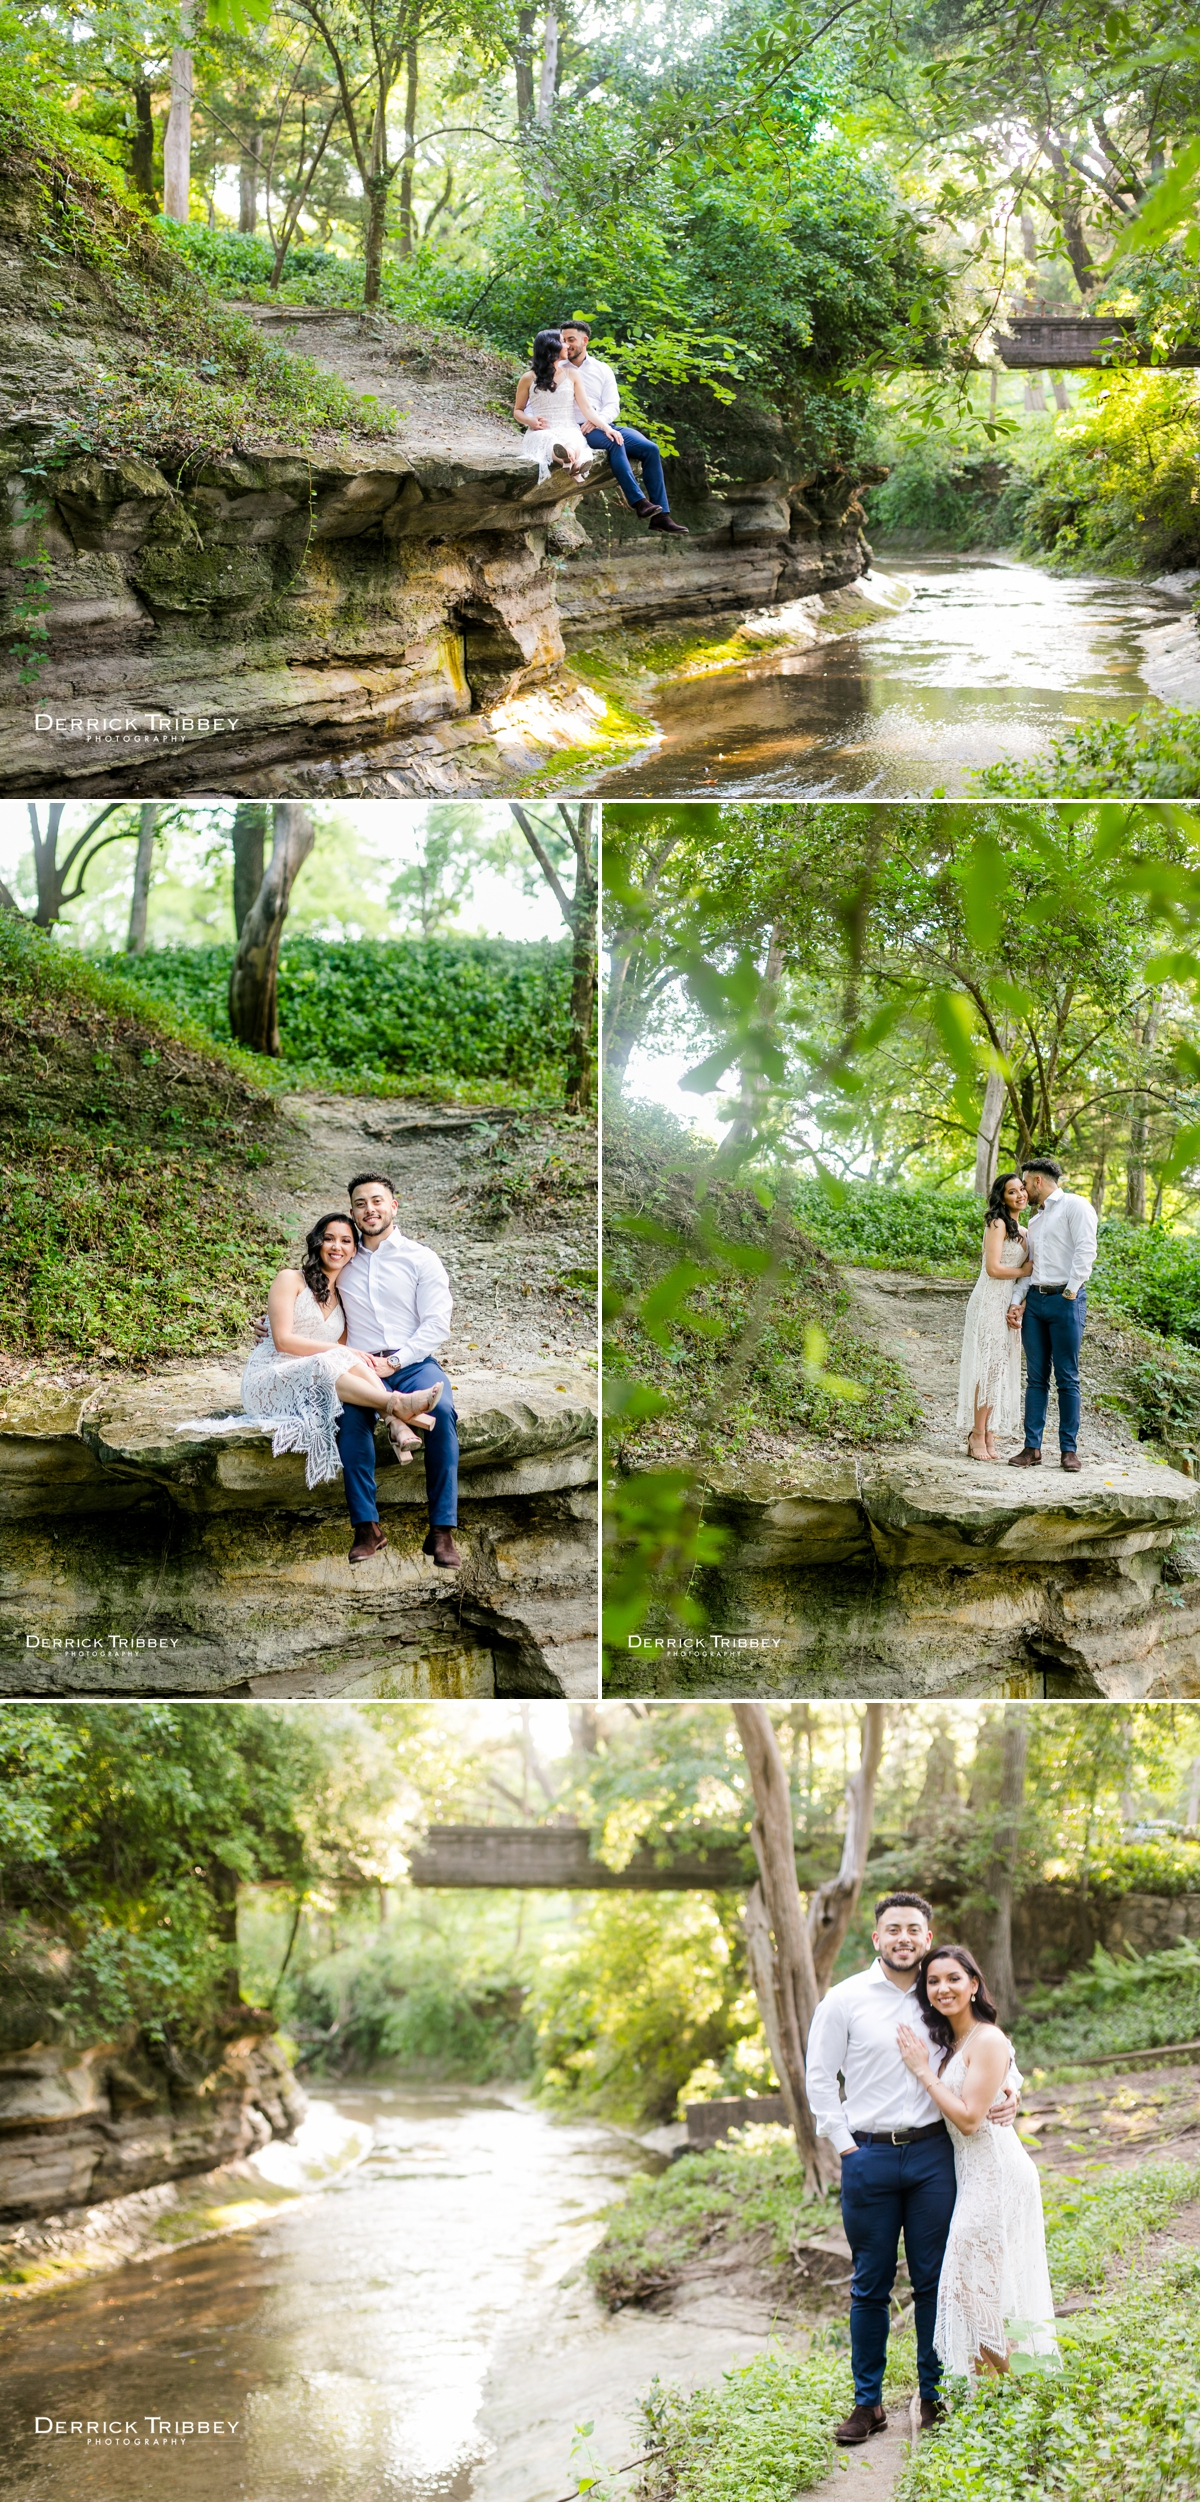 Dallas Wedding Photographer Derrick Tribbey